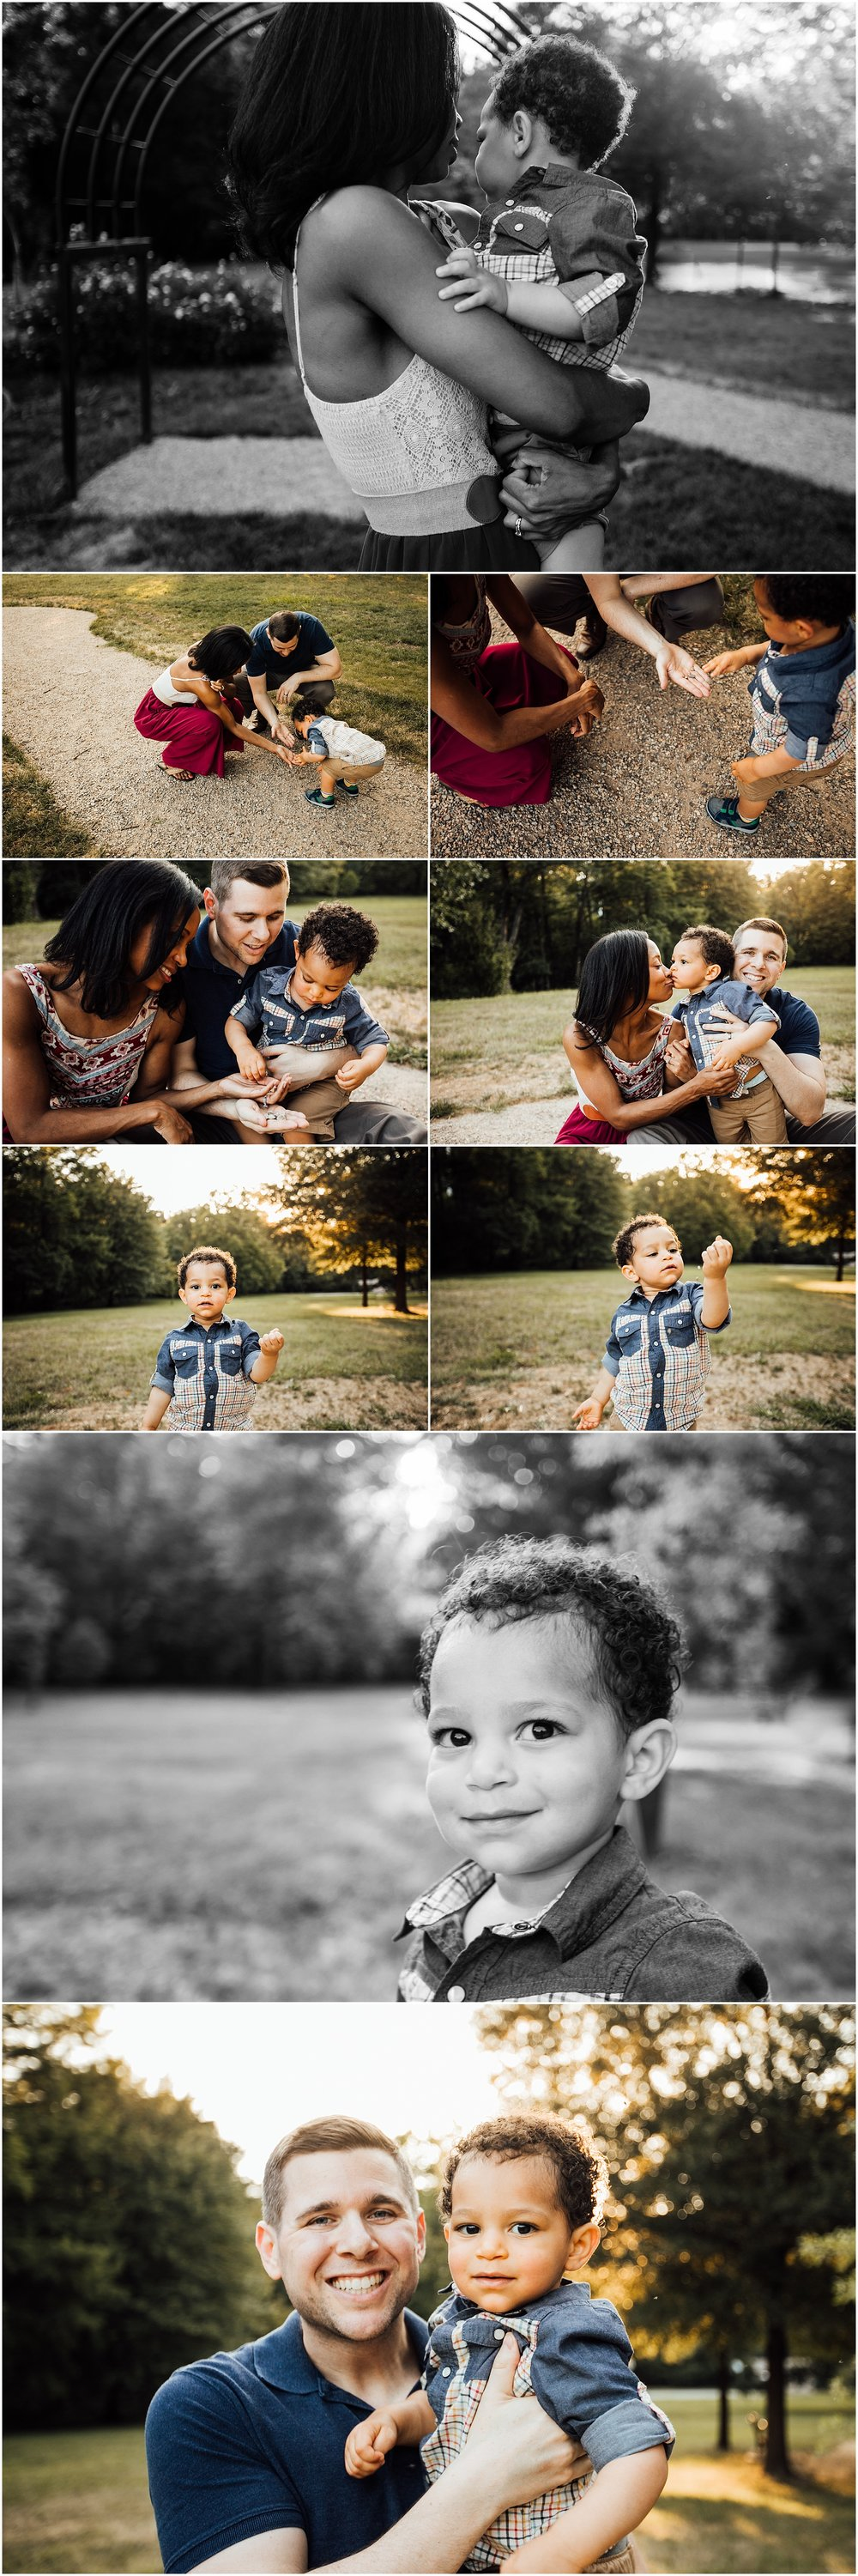 Lifestyle family session in gardens by Madison Alabama family photographer Rachel K Photo